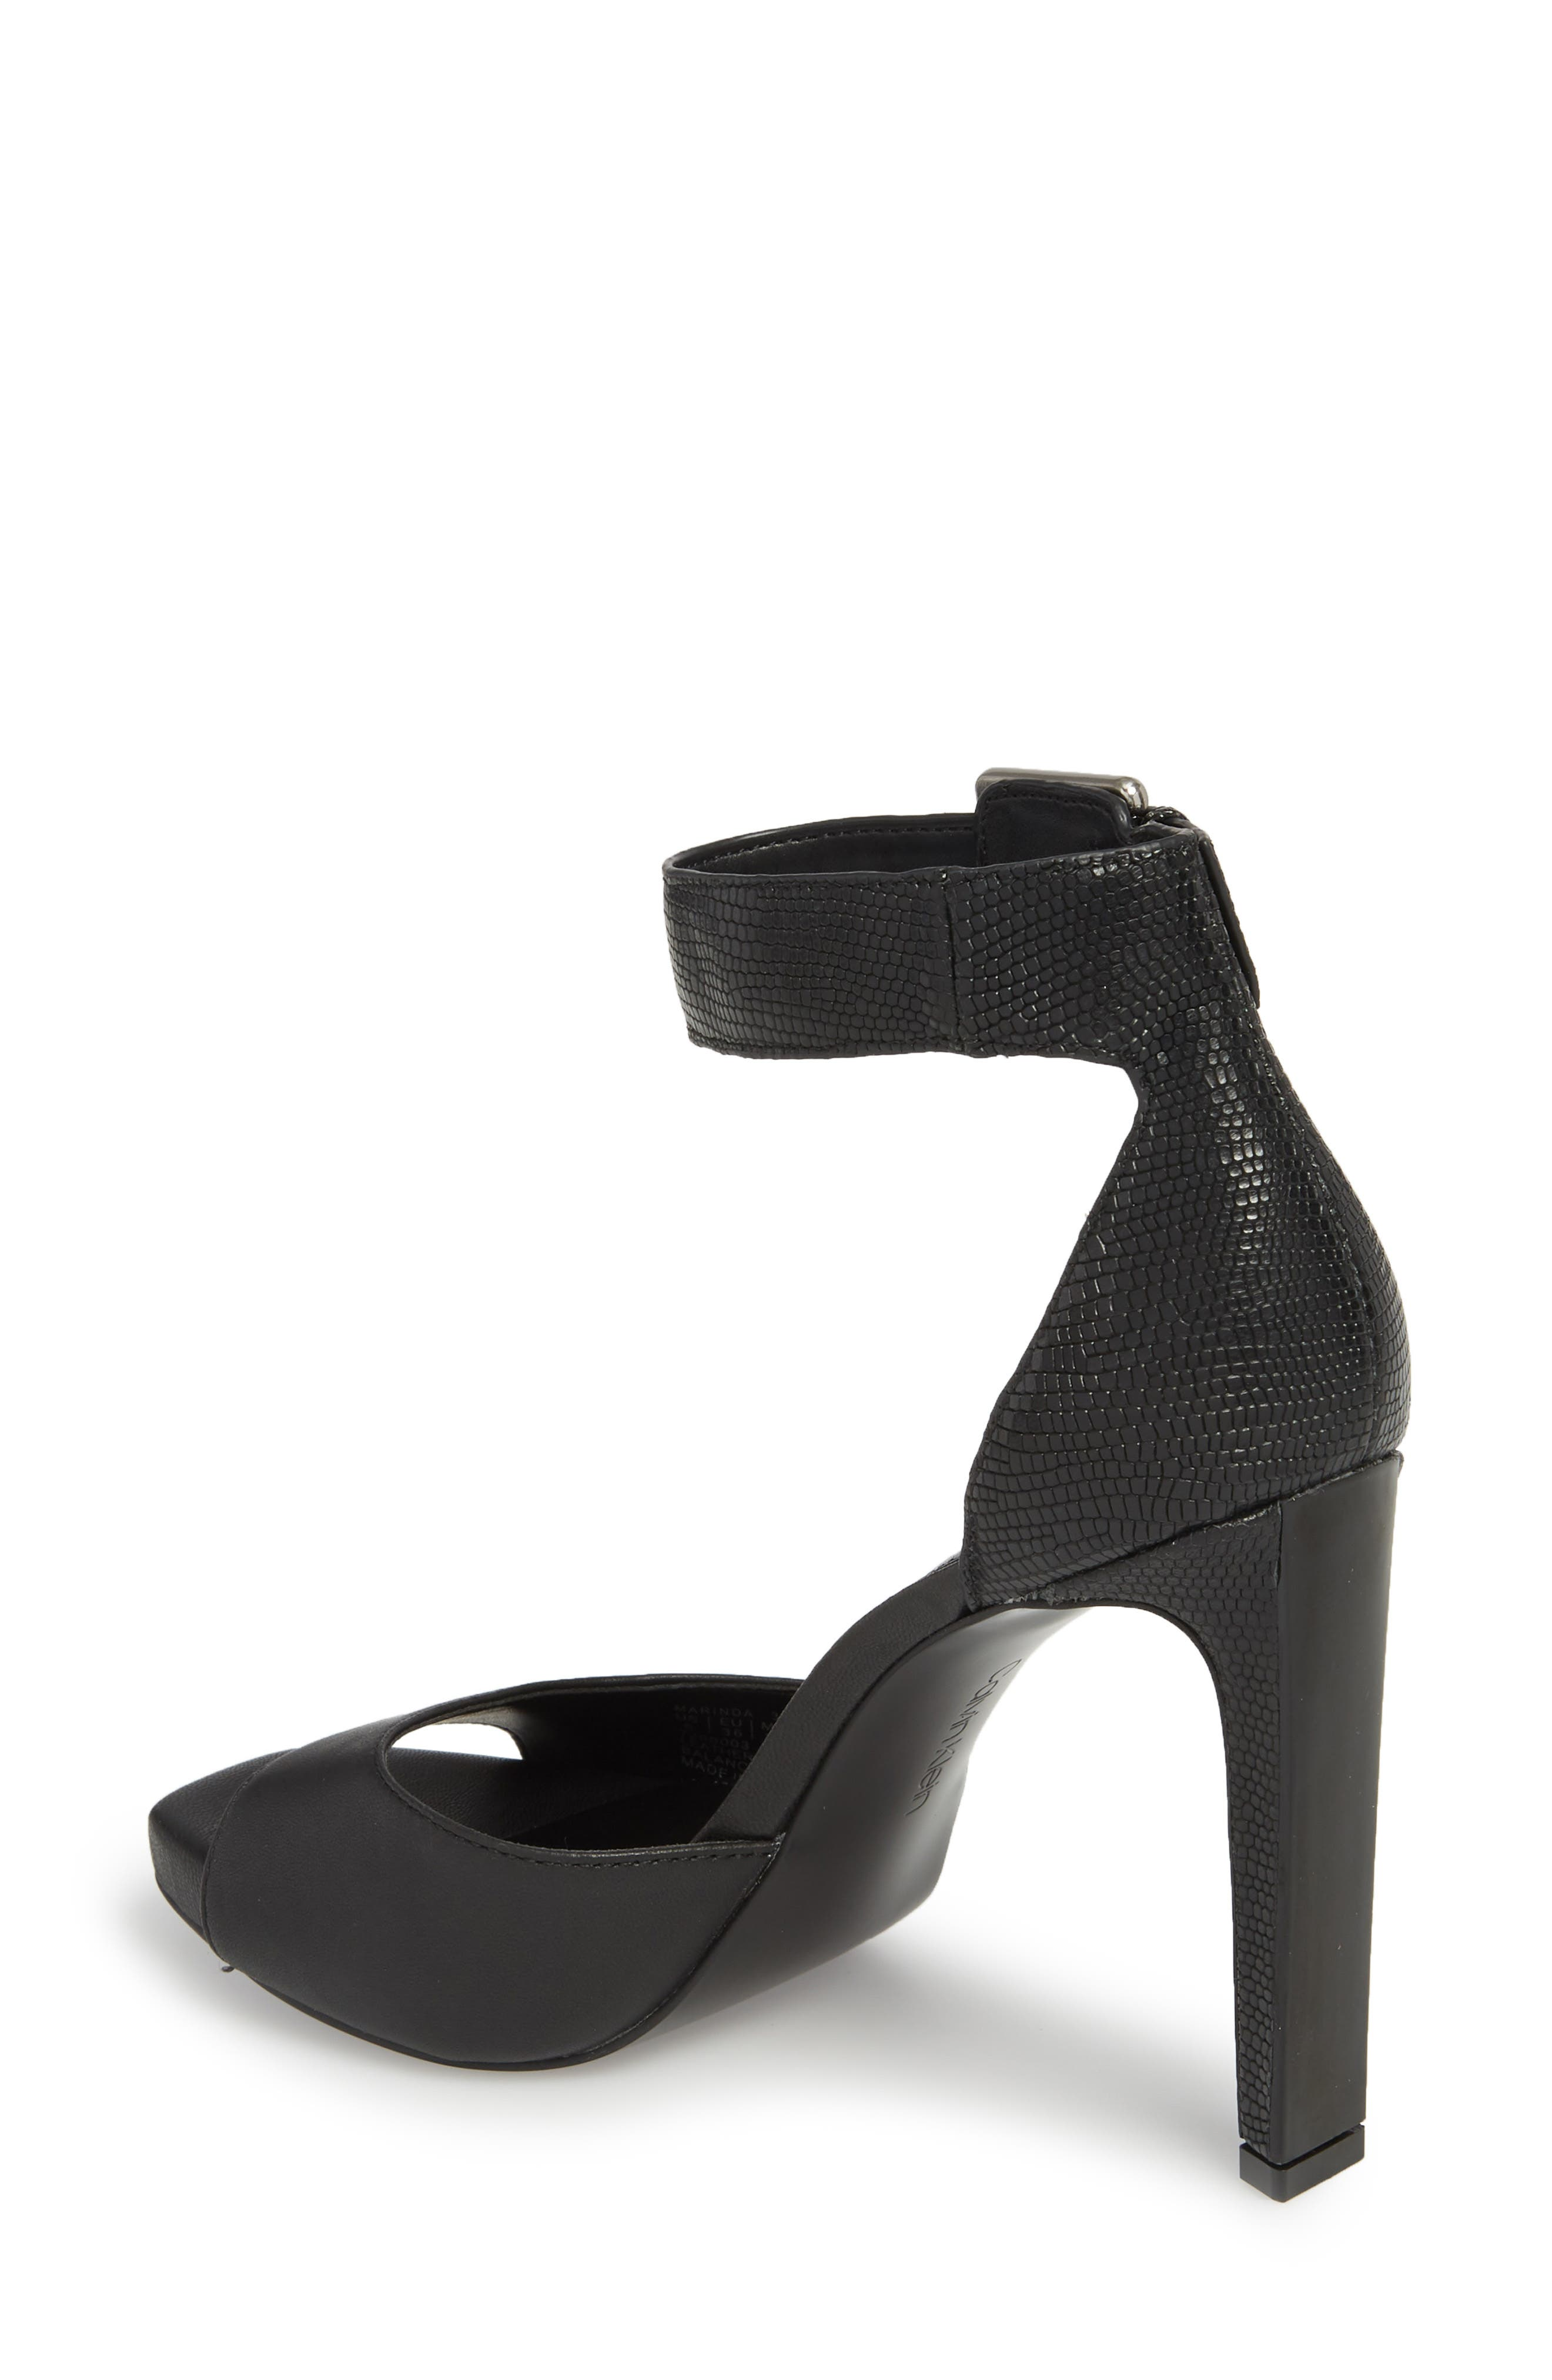 Marinda Halo Strap Sandal,                             Alternate thumbnail 2, color,                             BLACK LEATHER